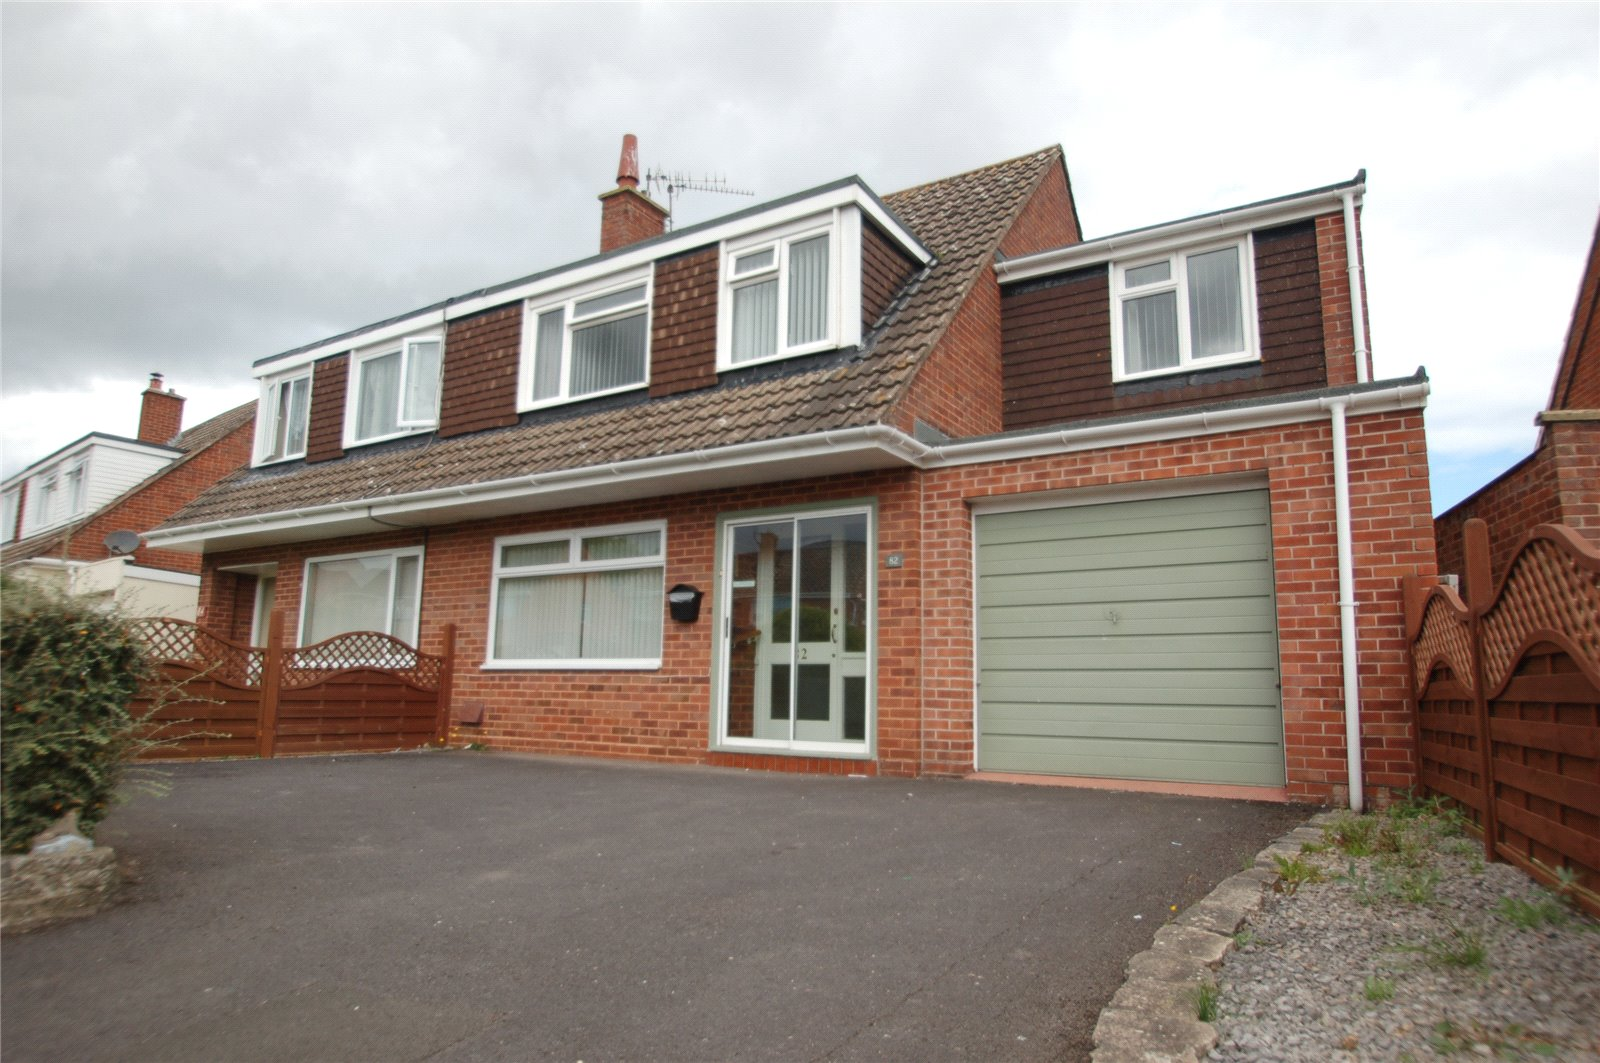 4 Bedrooms Semi Detached House for sale in Holford Road Bridgwater Somerset TA6